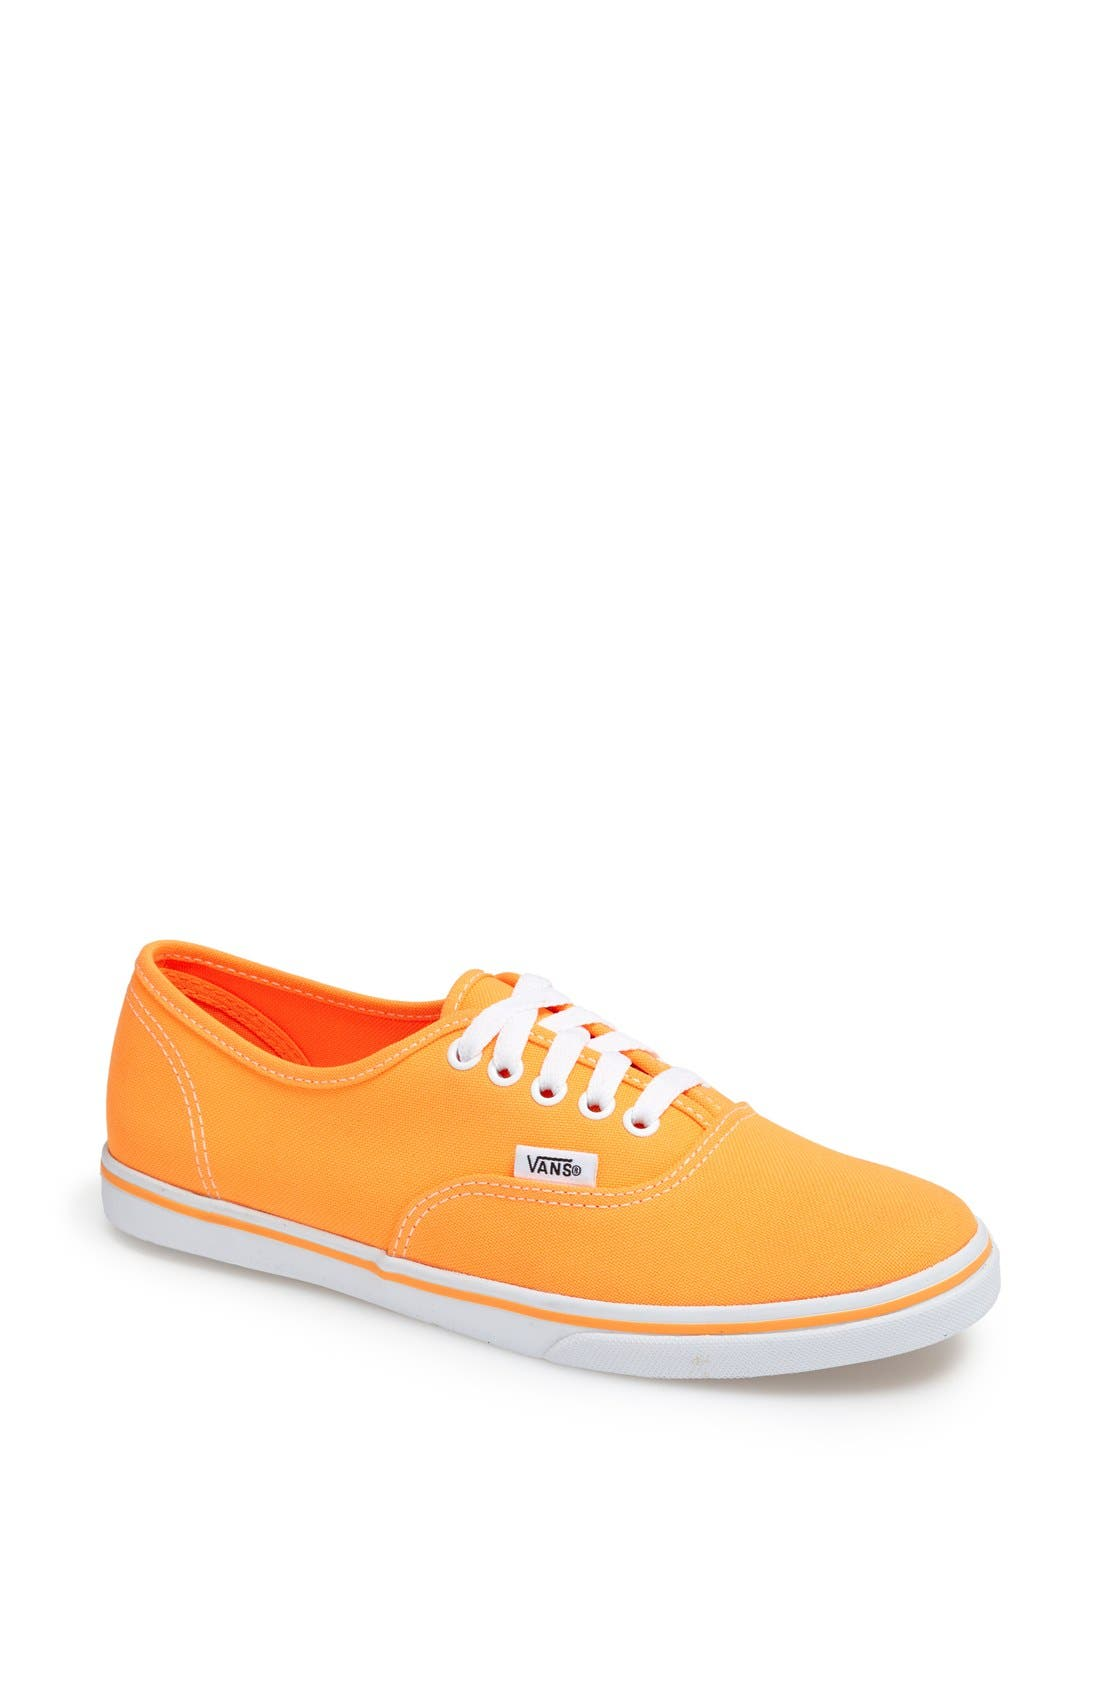 Main Image - Vans 'Authentic Lo Pro - Neon' Sneaker (Women)